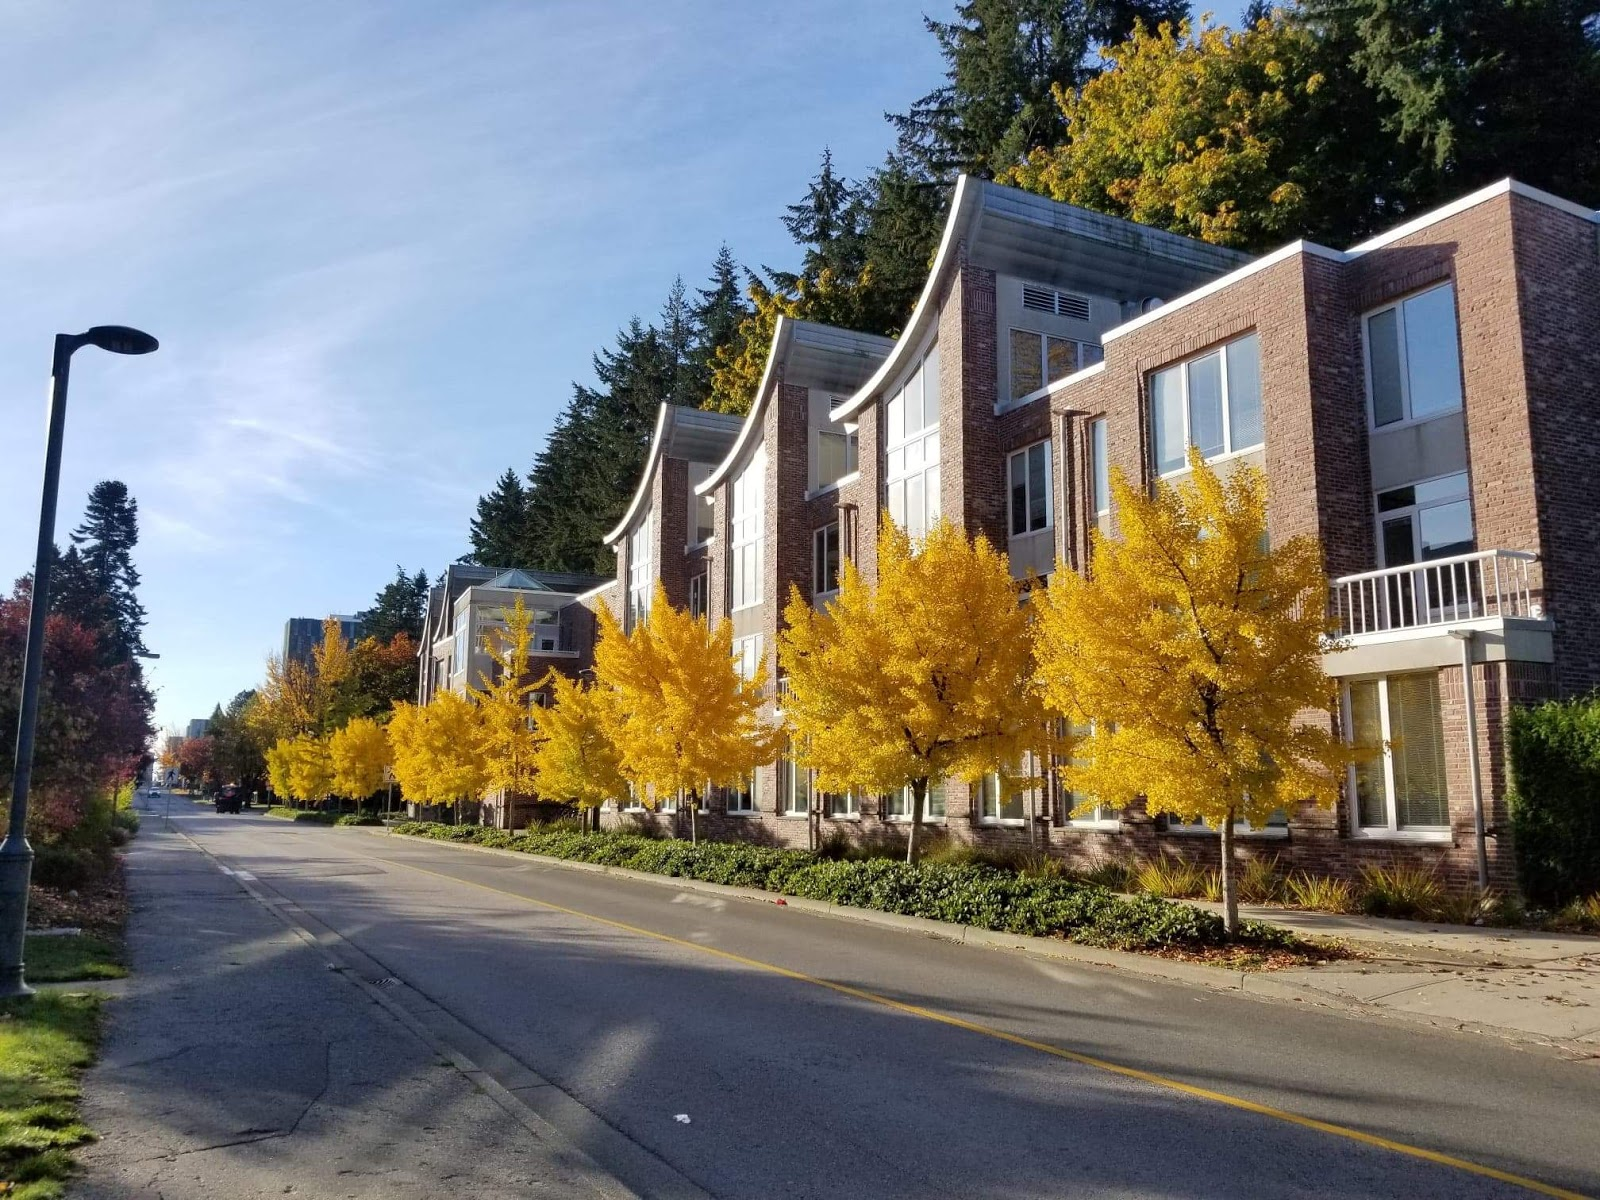 Built in 1996, the CK Choi Building for the Institute of Asian Research is not only UBC's first green building but one of the first green buildings in the world. (Schyler Edmundson)